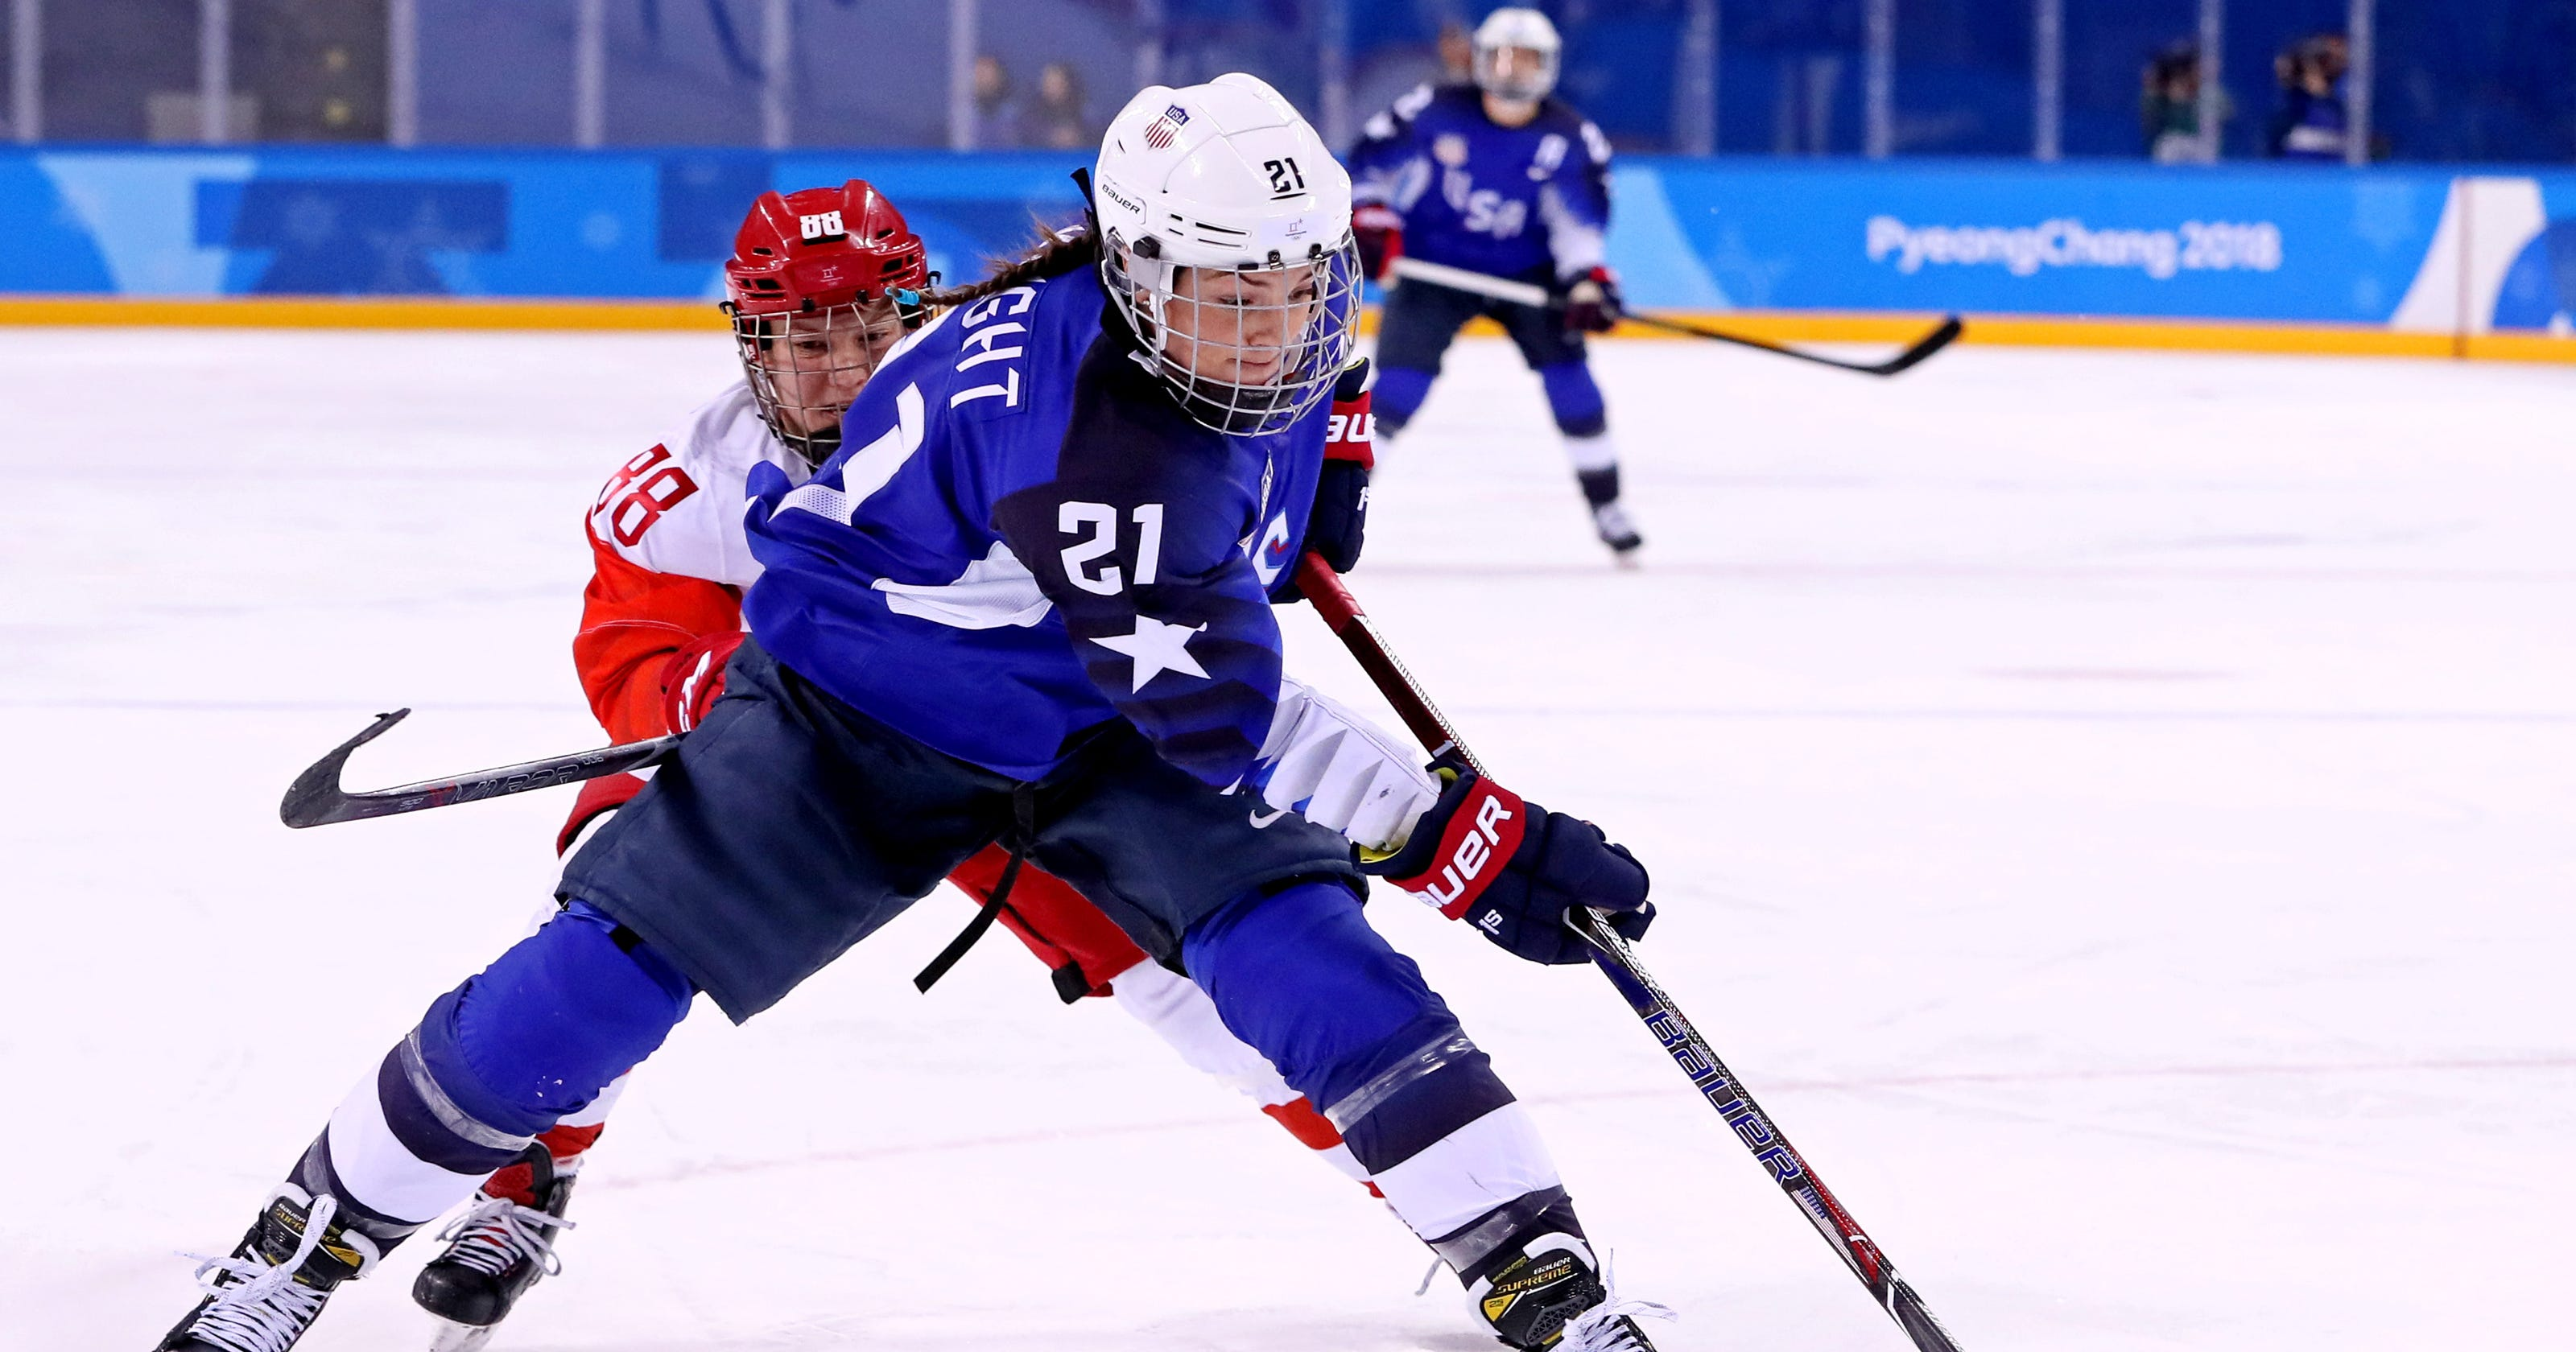 Winter Olympics Wisconsin Has Big Influence In Usa Canada Hockey Game